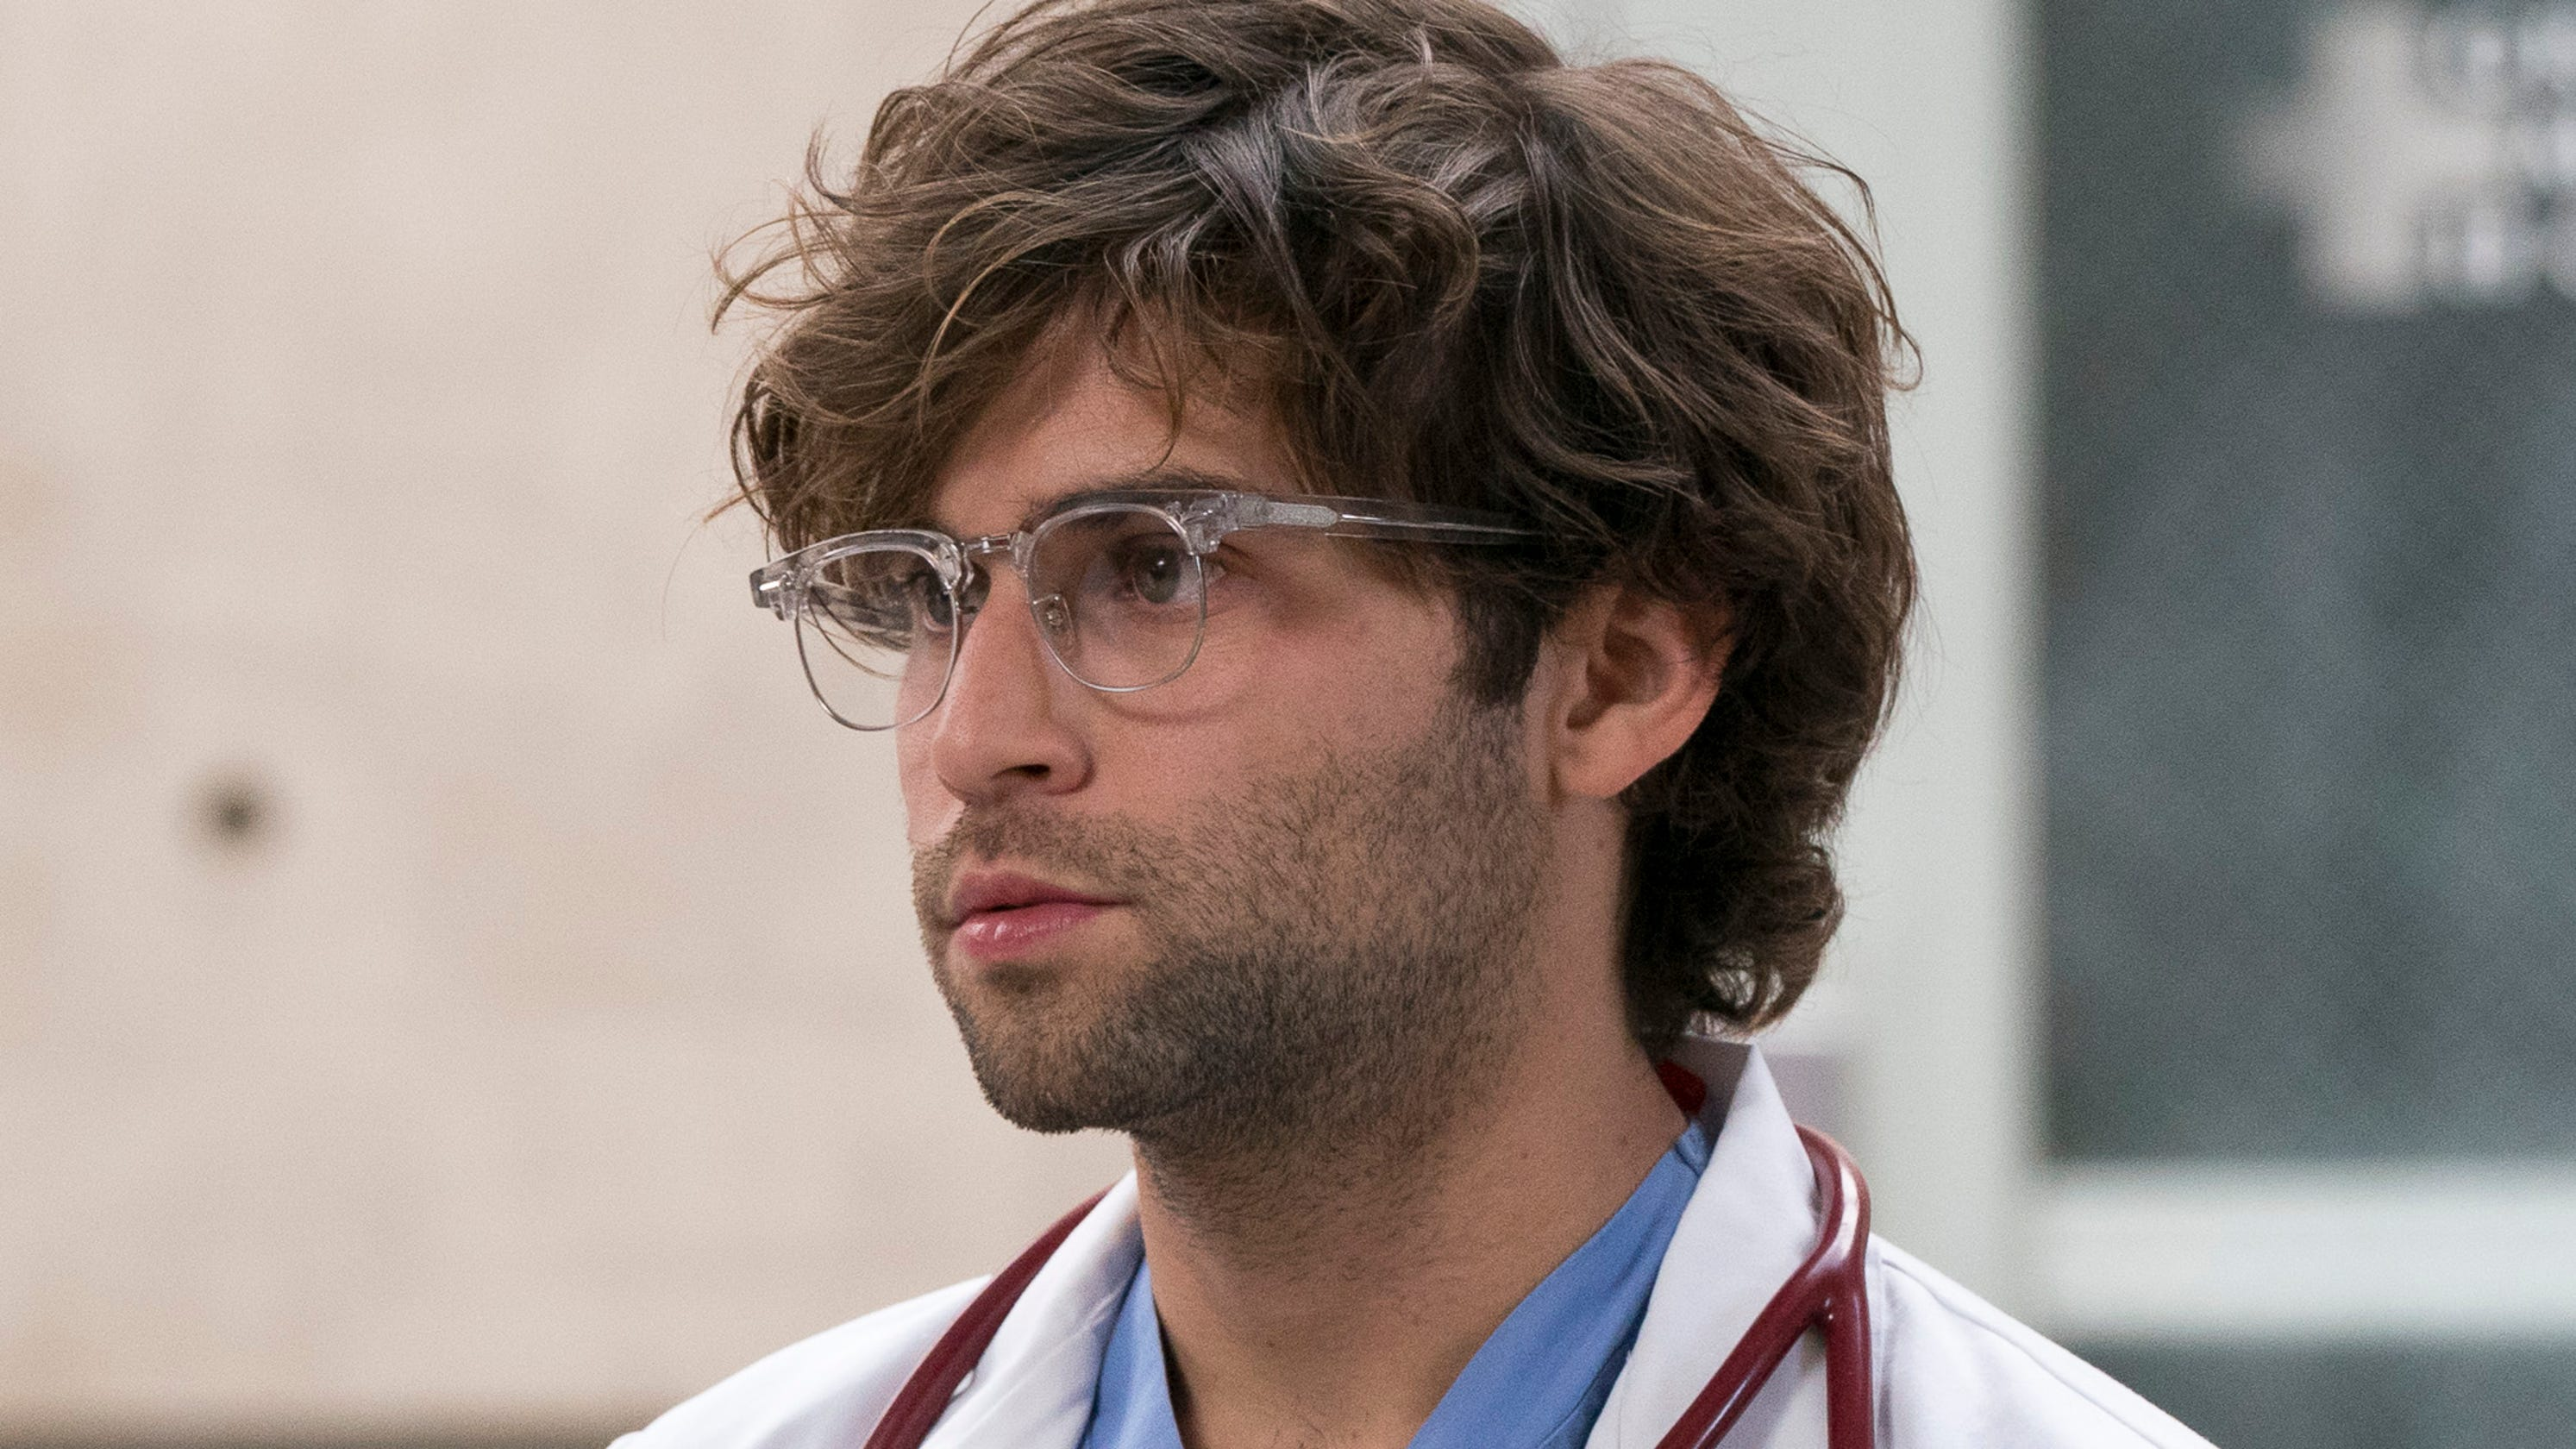 Greys Anatomy Star Jake Borelli Comes Out As Gay